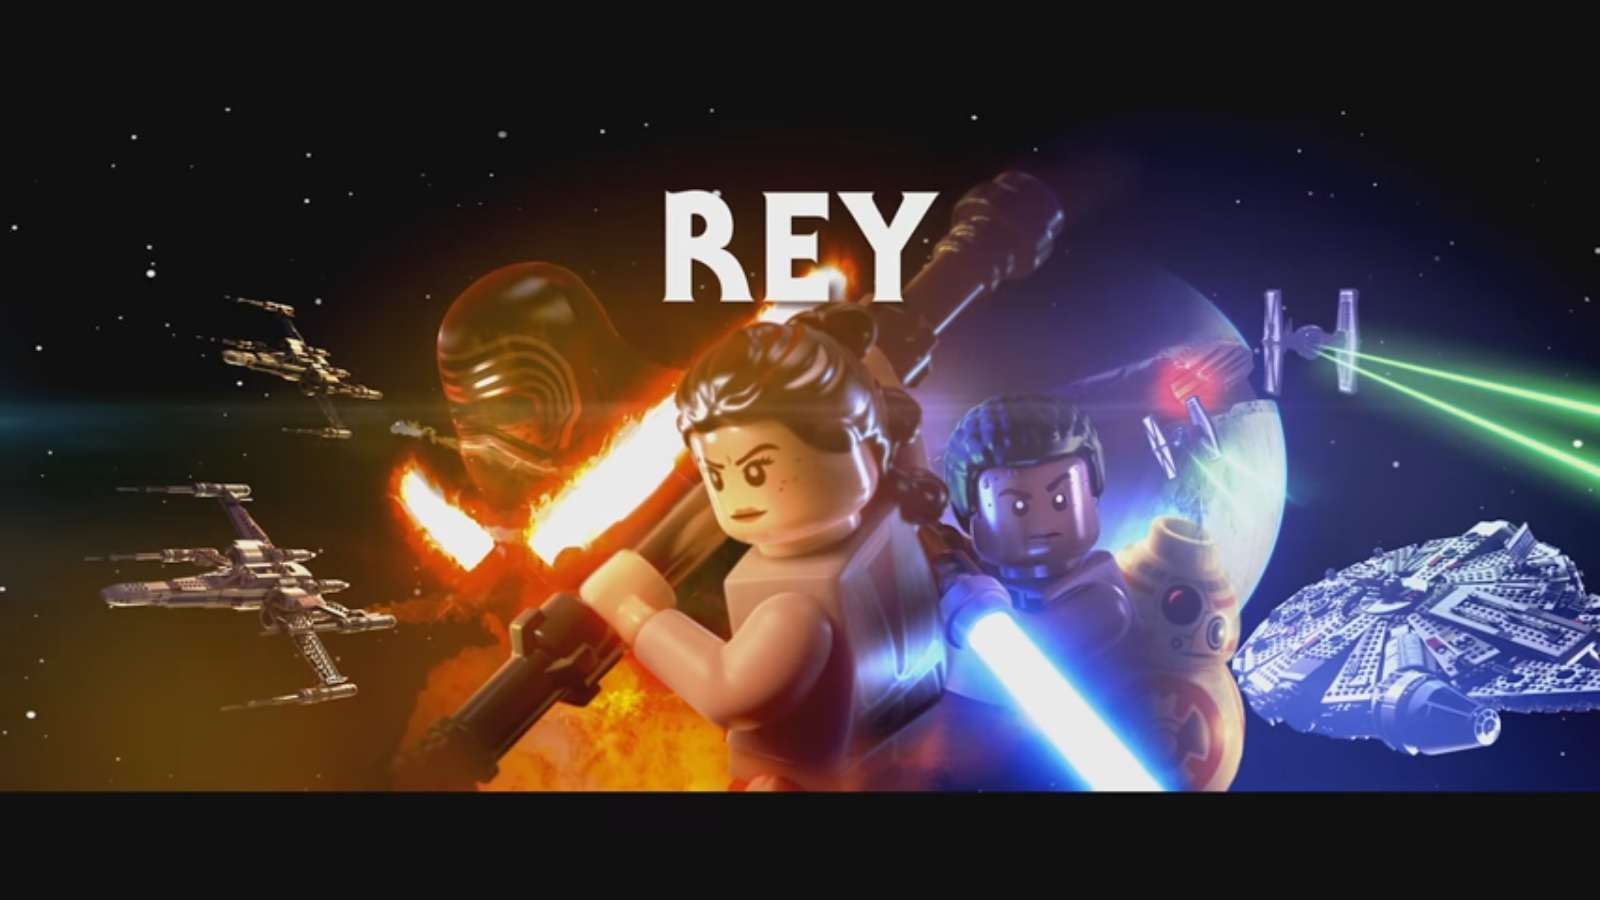 Lego Star Wars The Force Awakens Rey Character Vignette